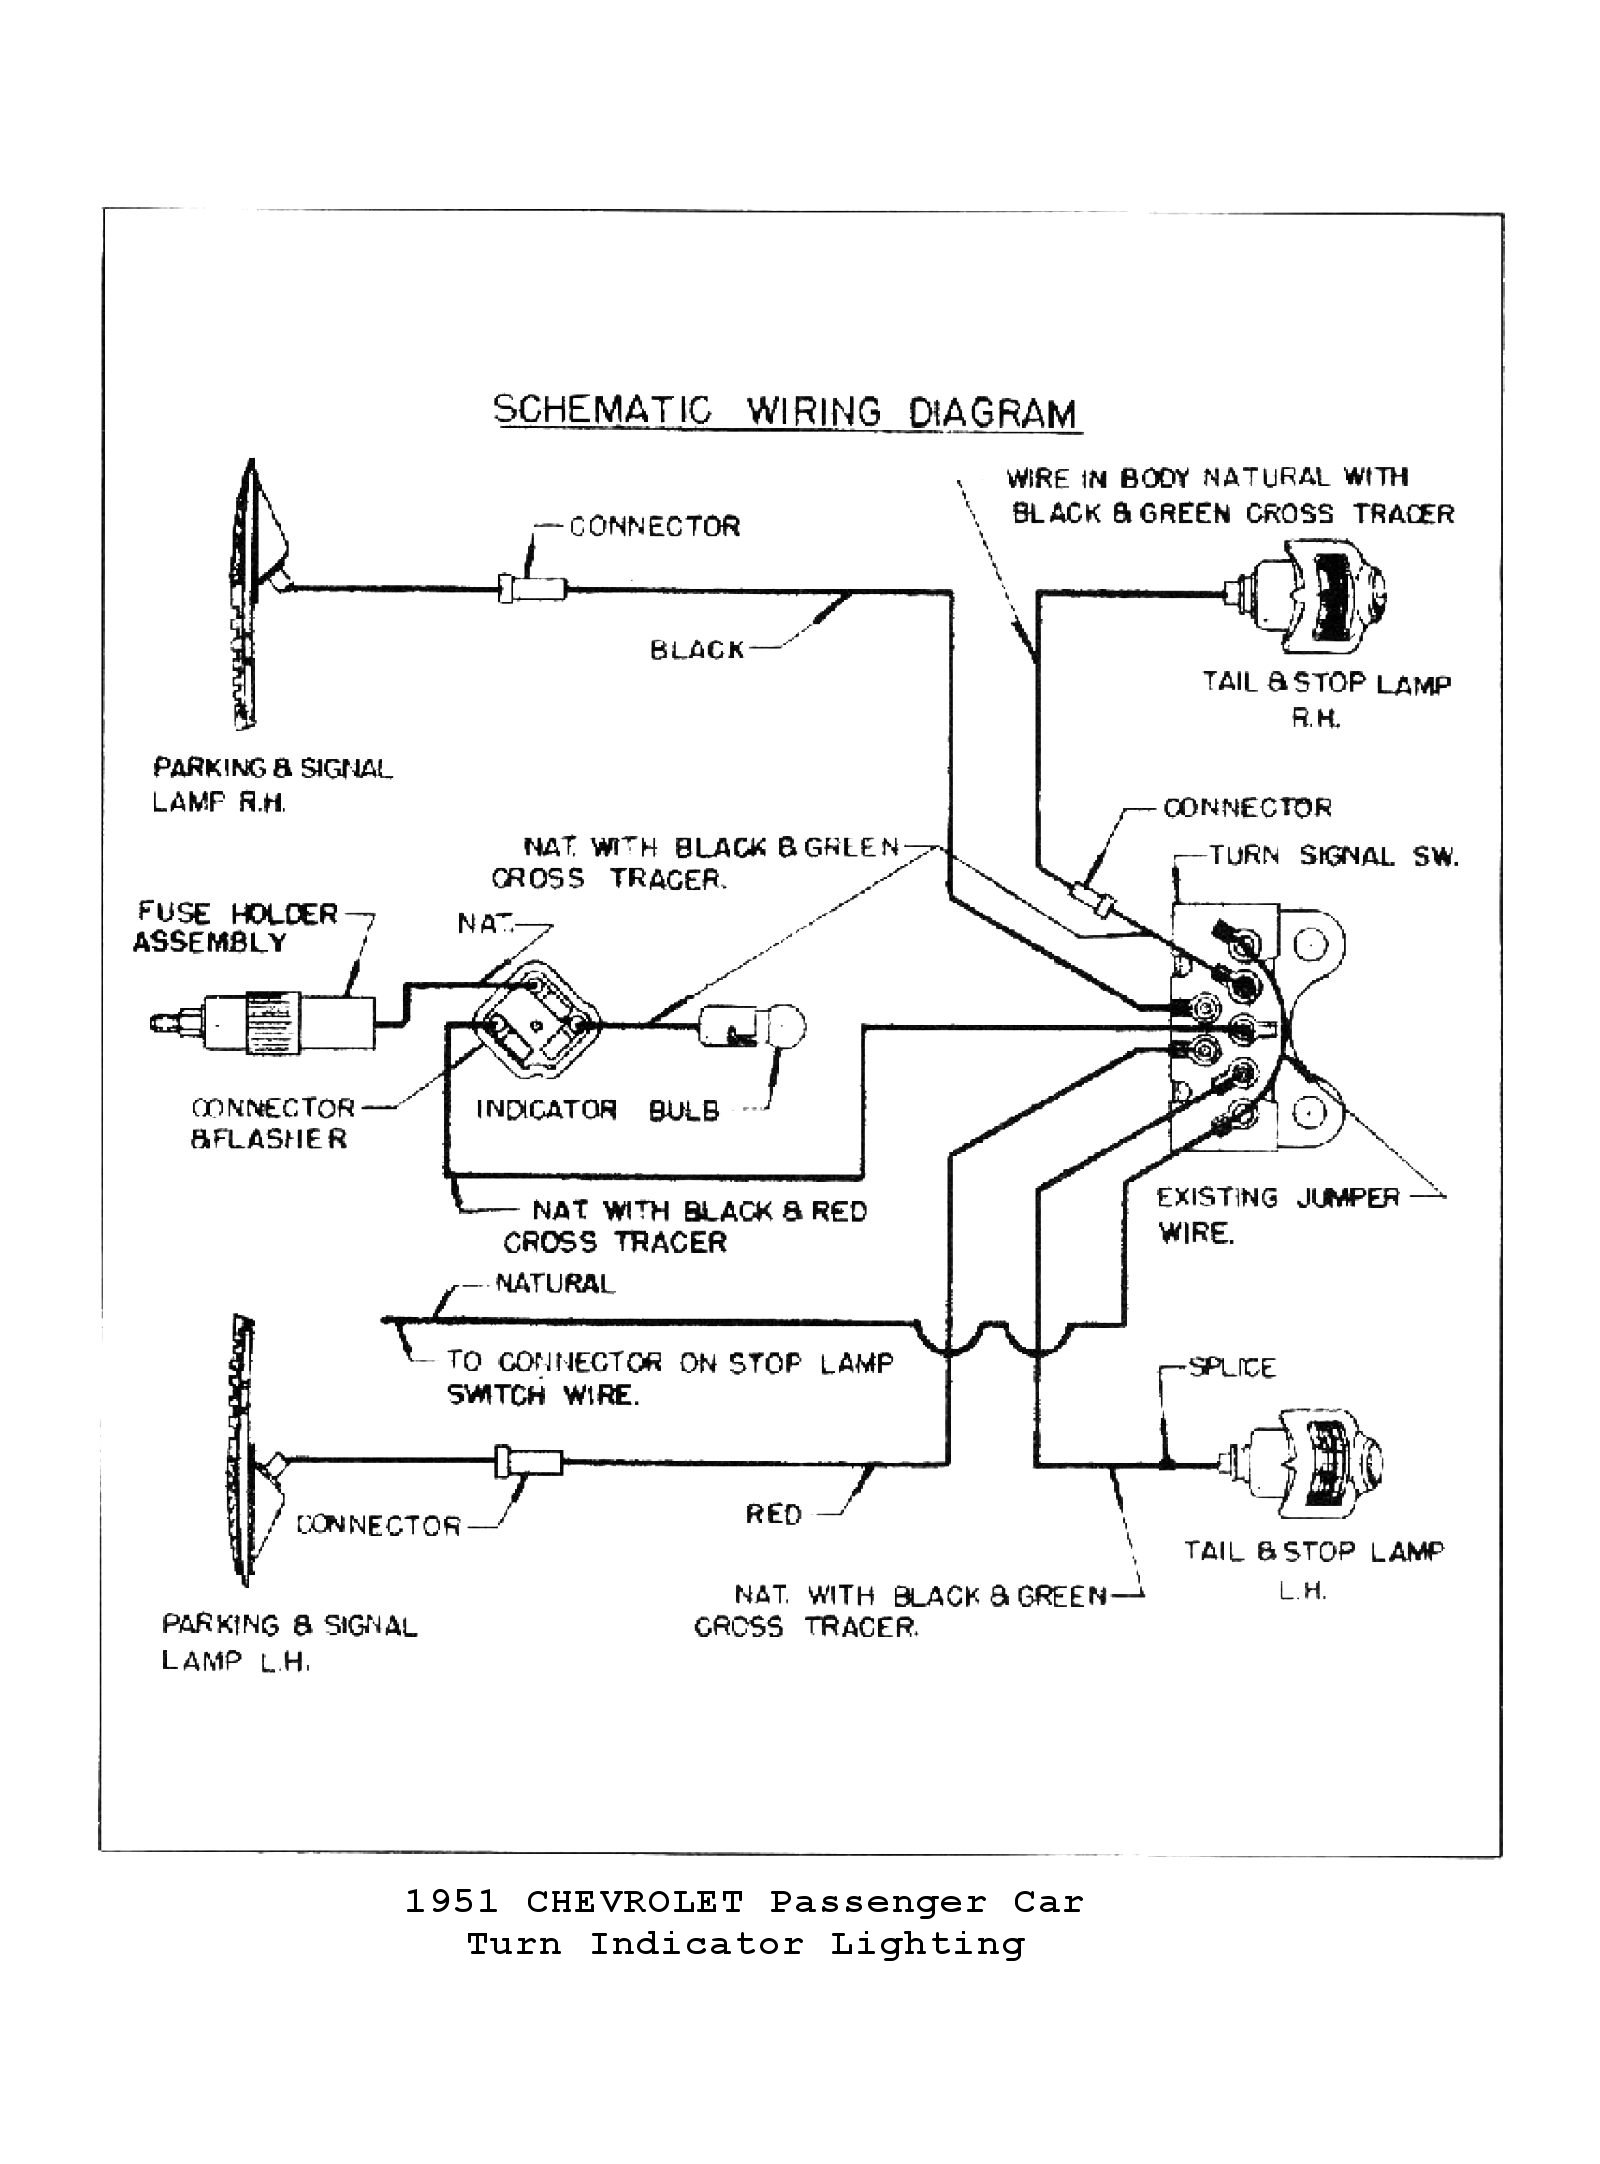 hight resolution of chevy wiring diagrams 1948 chevy stylemaster wiring diagram 1948 chevrolet wiring diagram